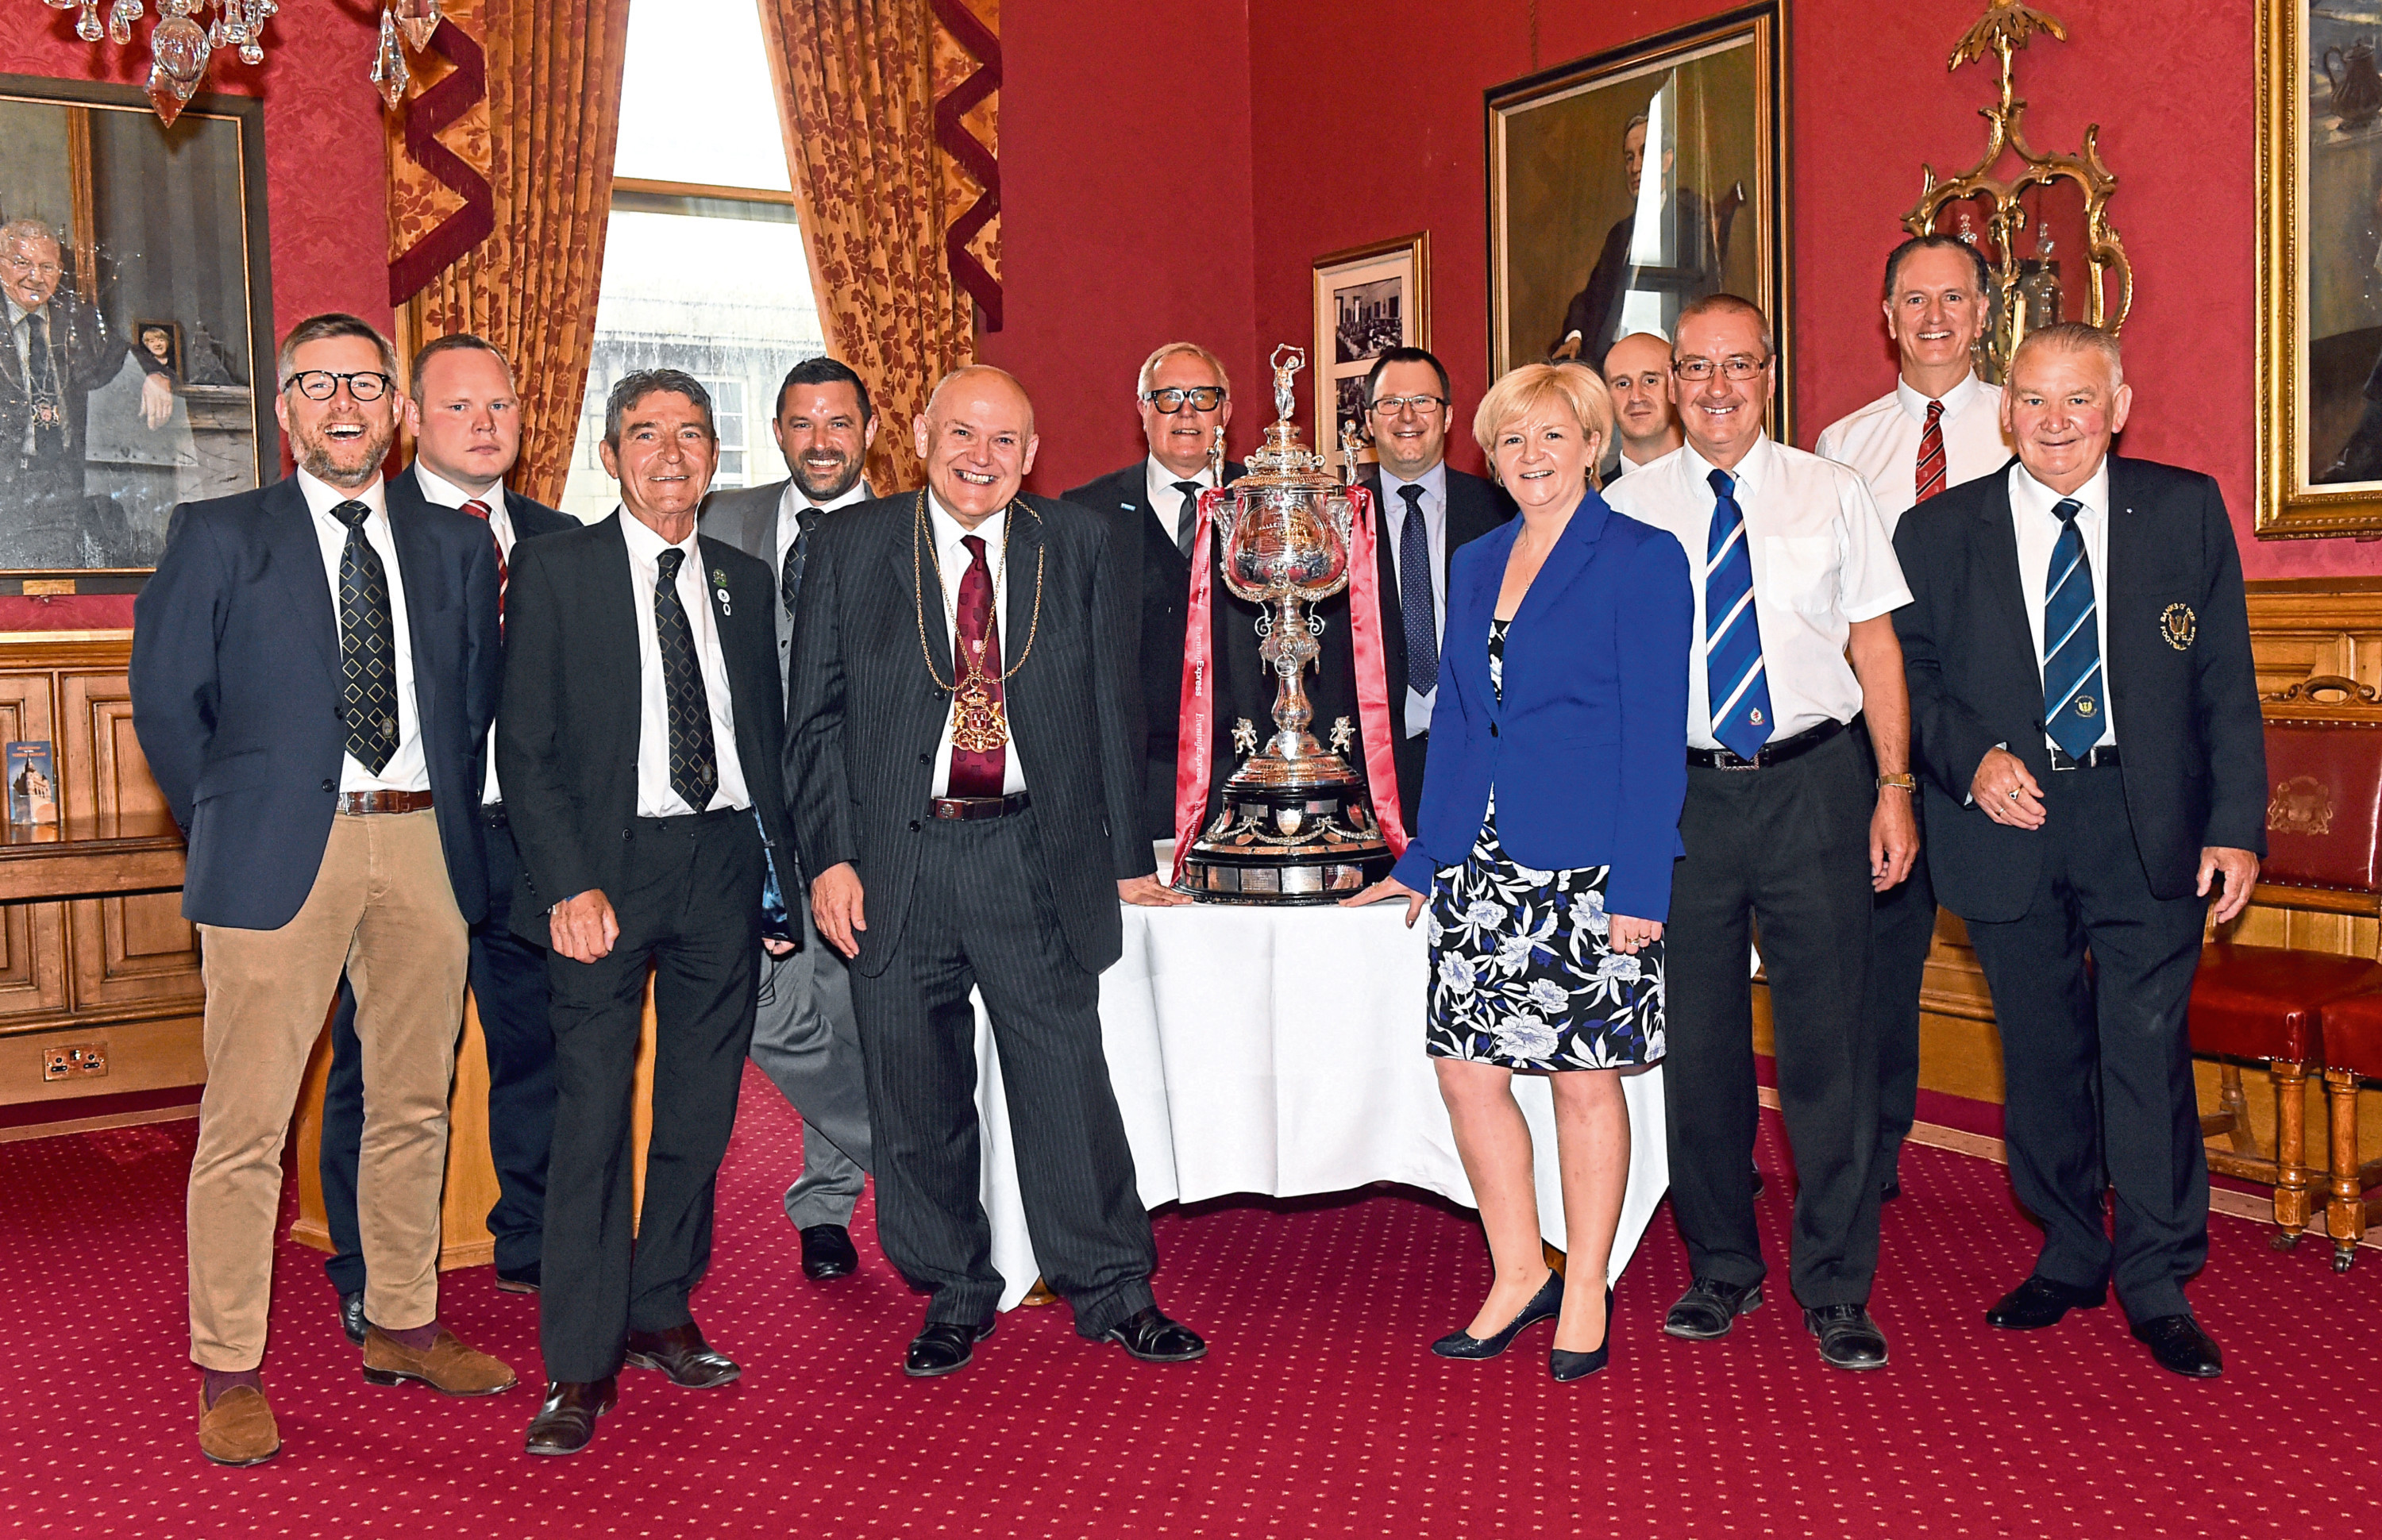 The draw for the Aberdeenshire Cup was made tonight at the Town House by the Lord Provost and Councillor Jenny Laing with various Highland League and other representatives in attendance. Pictured are Lord Provost, Barney Crocket, Councillor Jenny Laing and attendees. Picture by Heather Fowlie